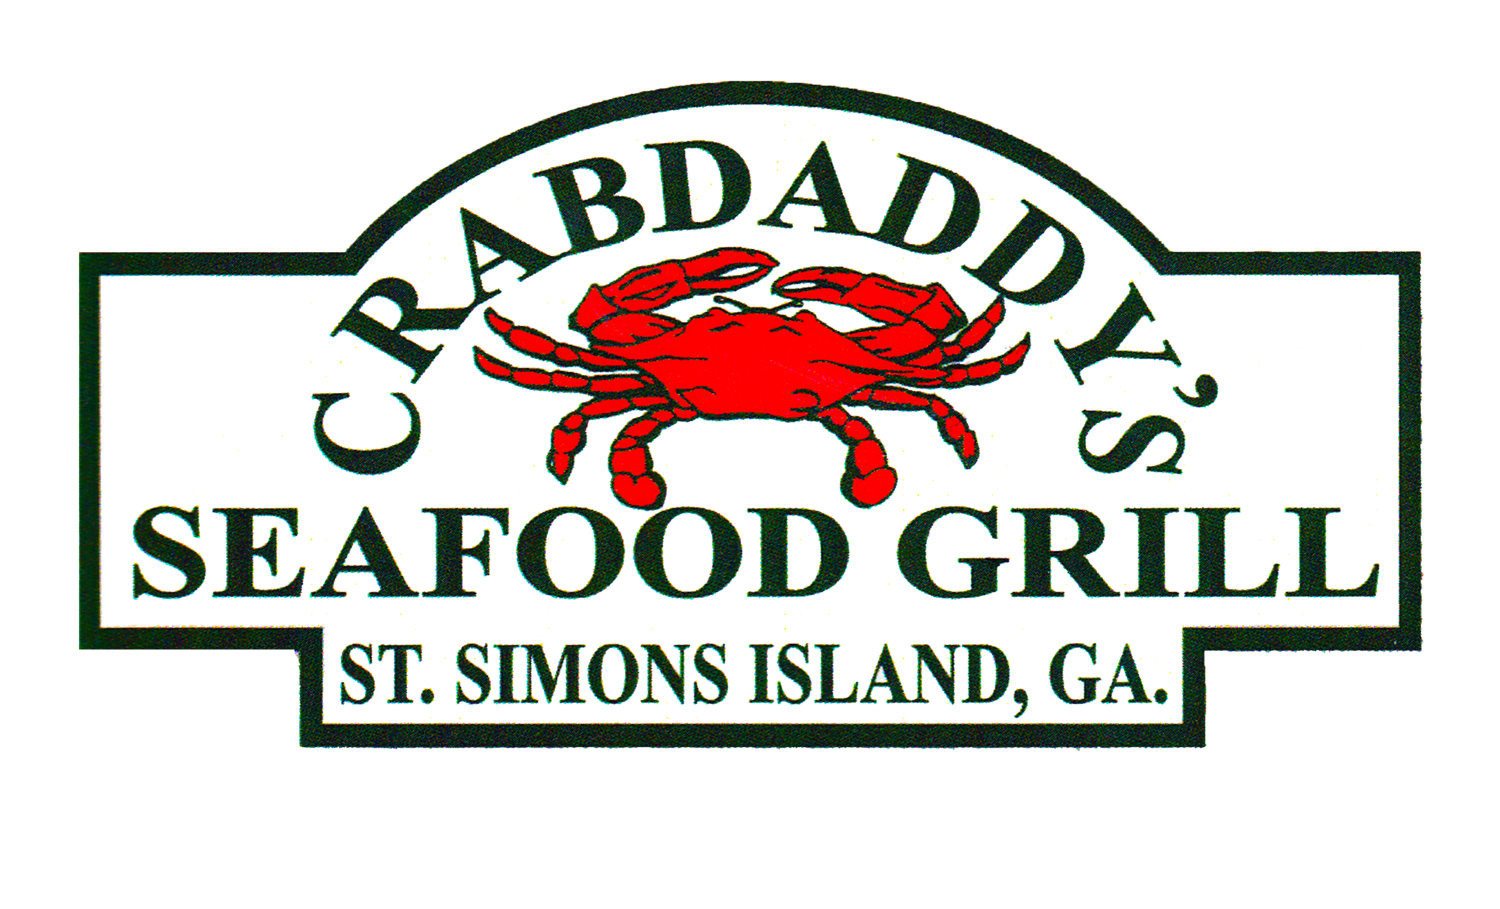 Joes crab shack png. Crabdaddy s seafood grill